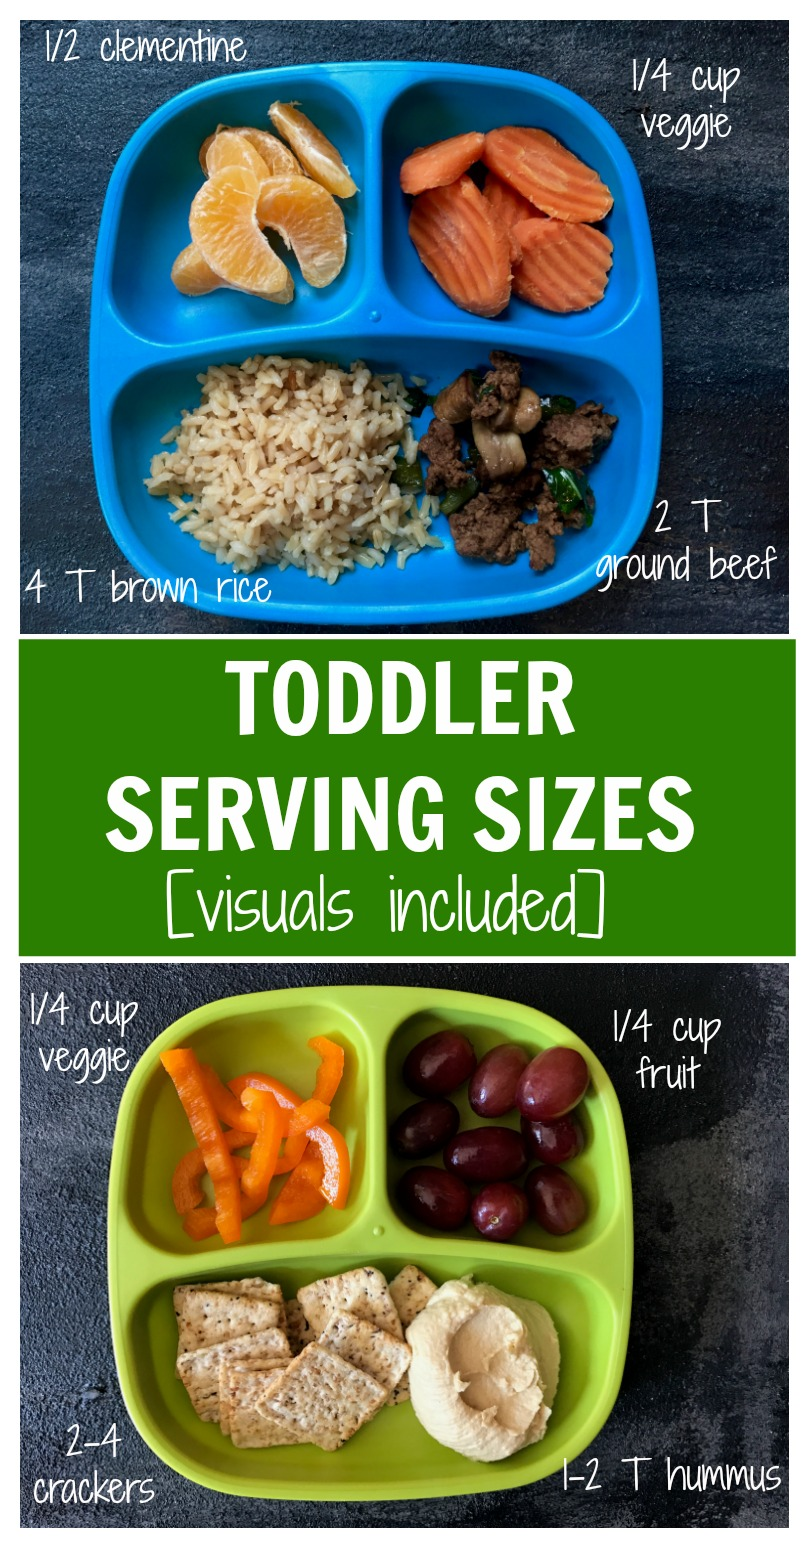 Learn what and how much your toddler should be eating with actual pictures of toddler serving sizes.